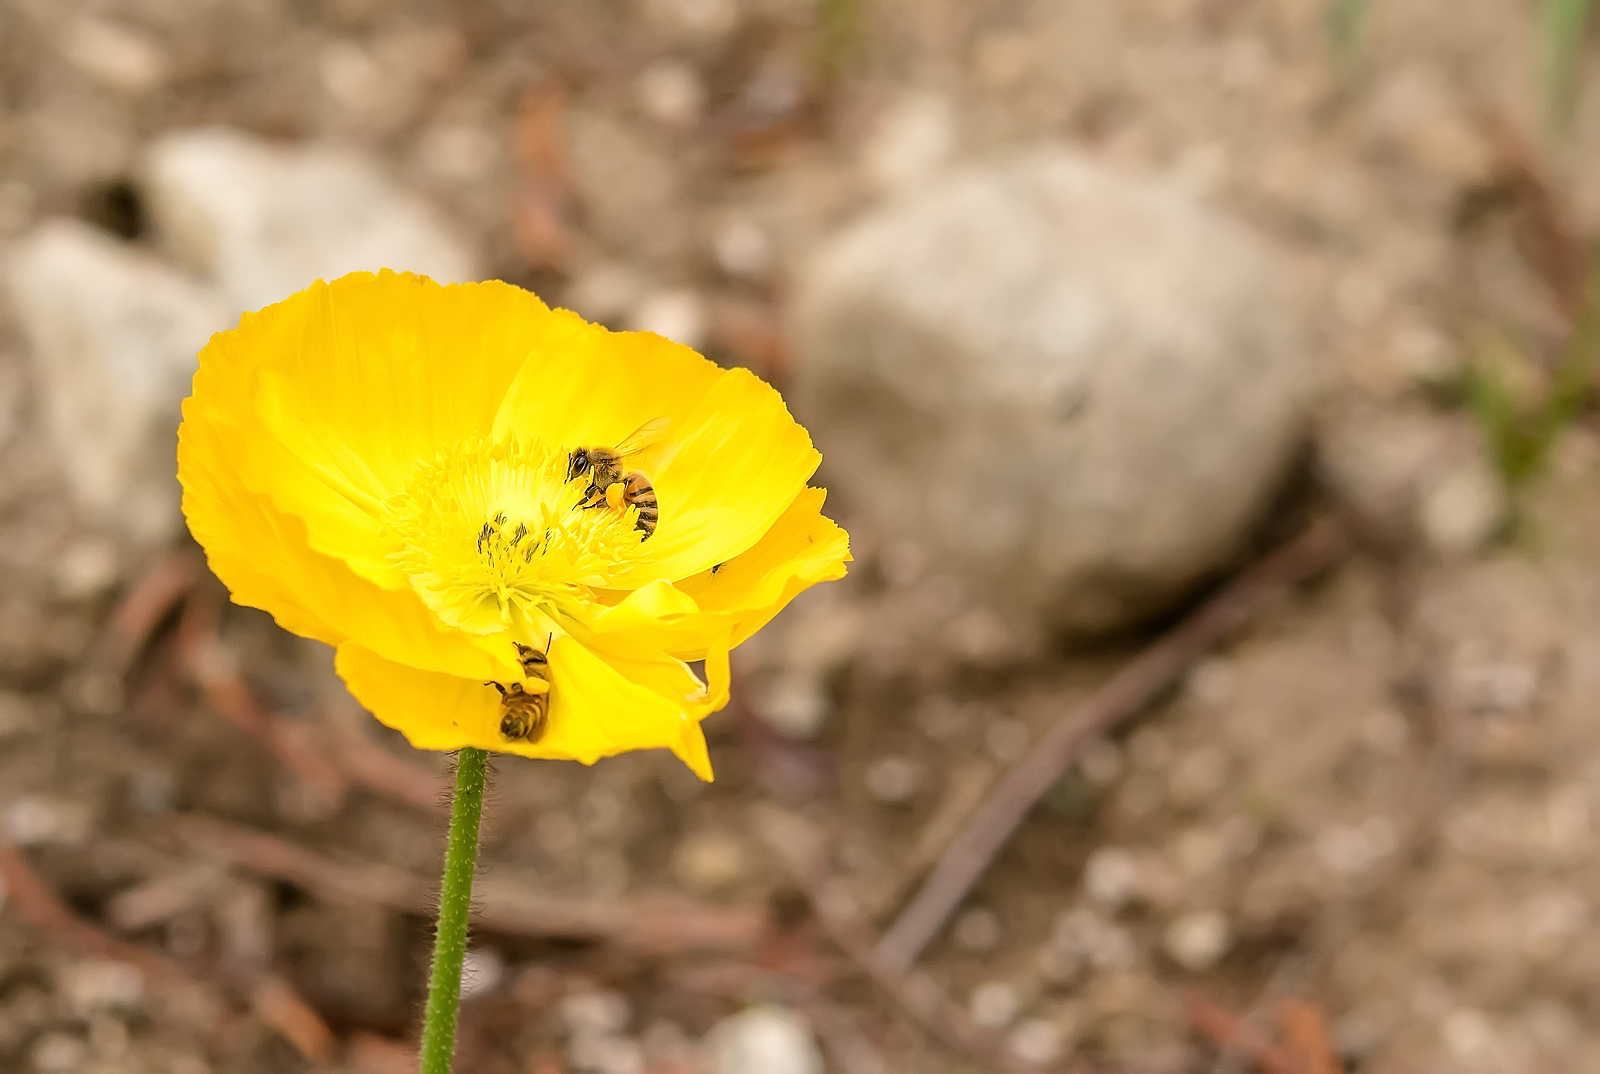 Bees playing inside a yellow poppy flower